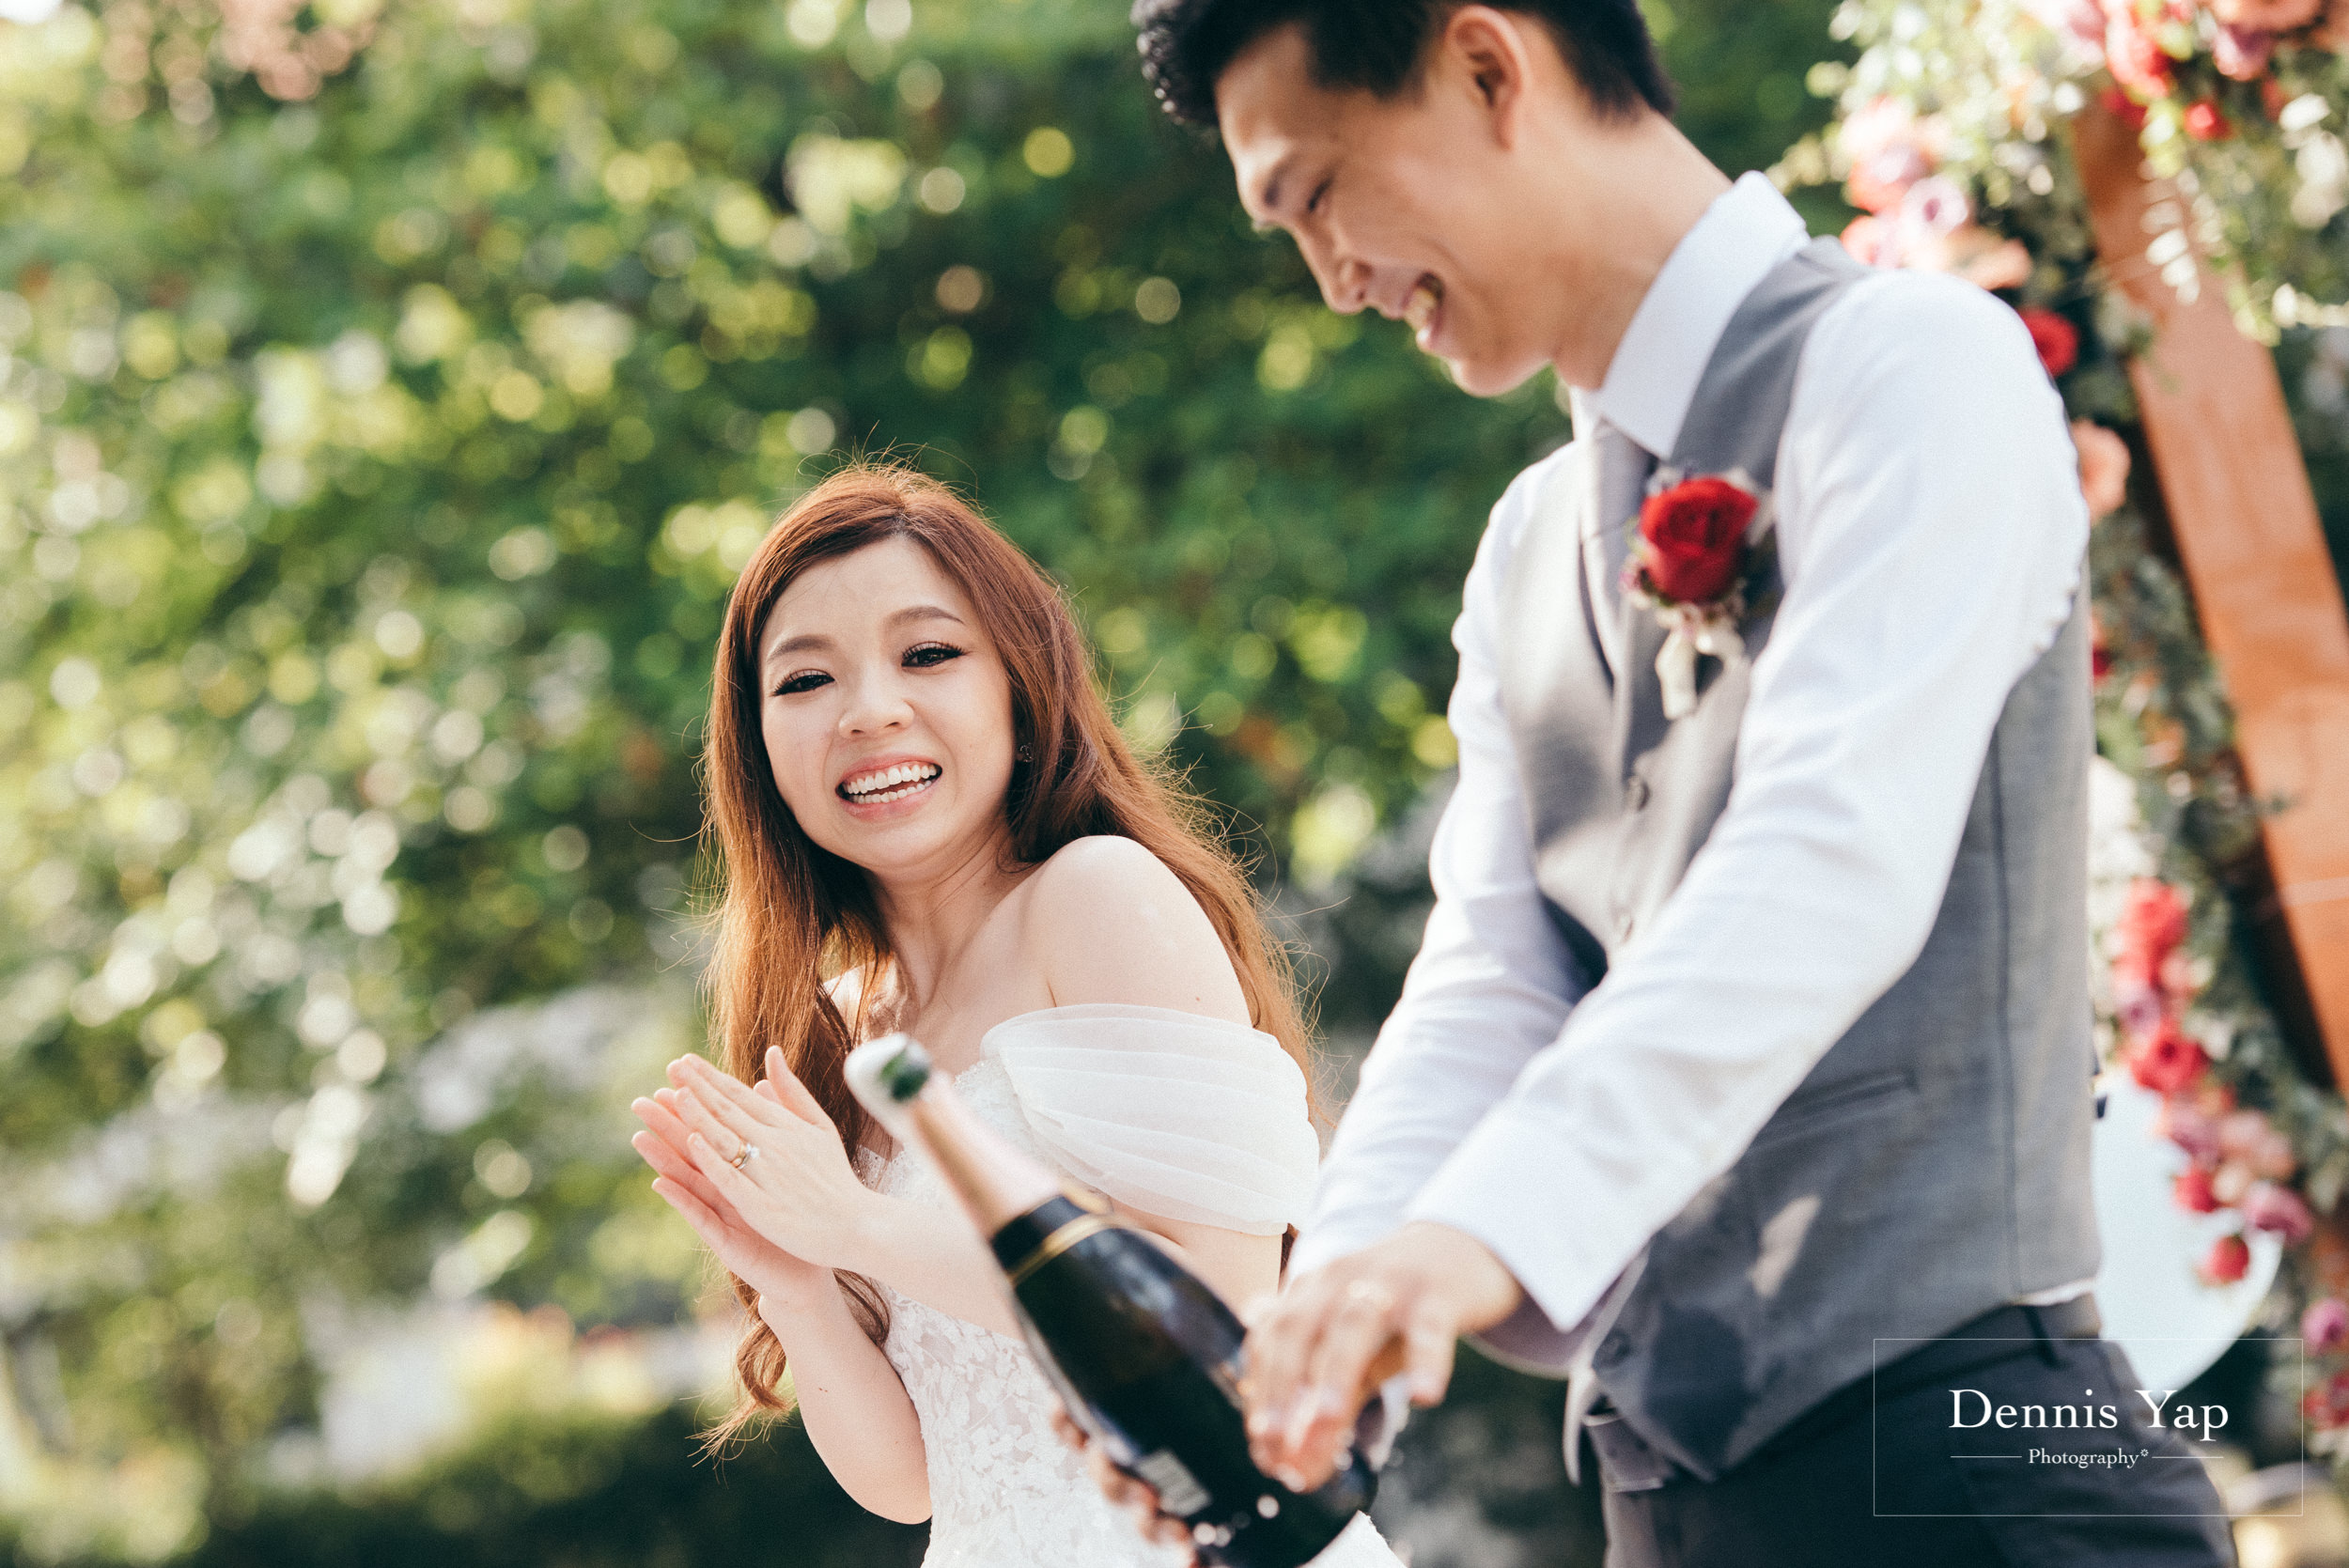 CT Annie garden wedding saujana subang jaya dennis yap photography IT malaysia top photographer-15.jpg